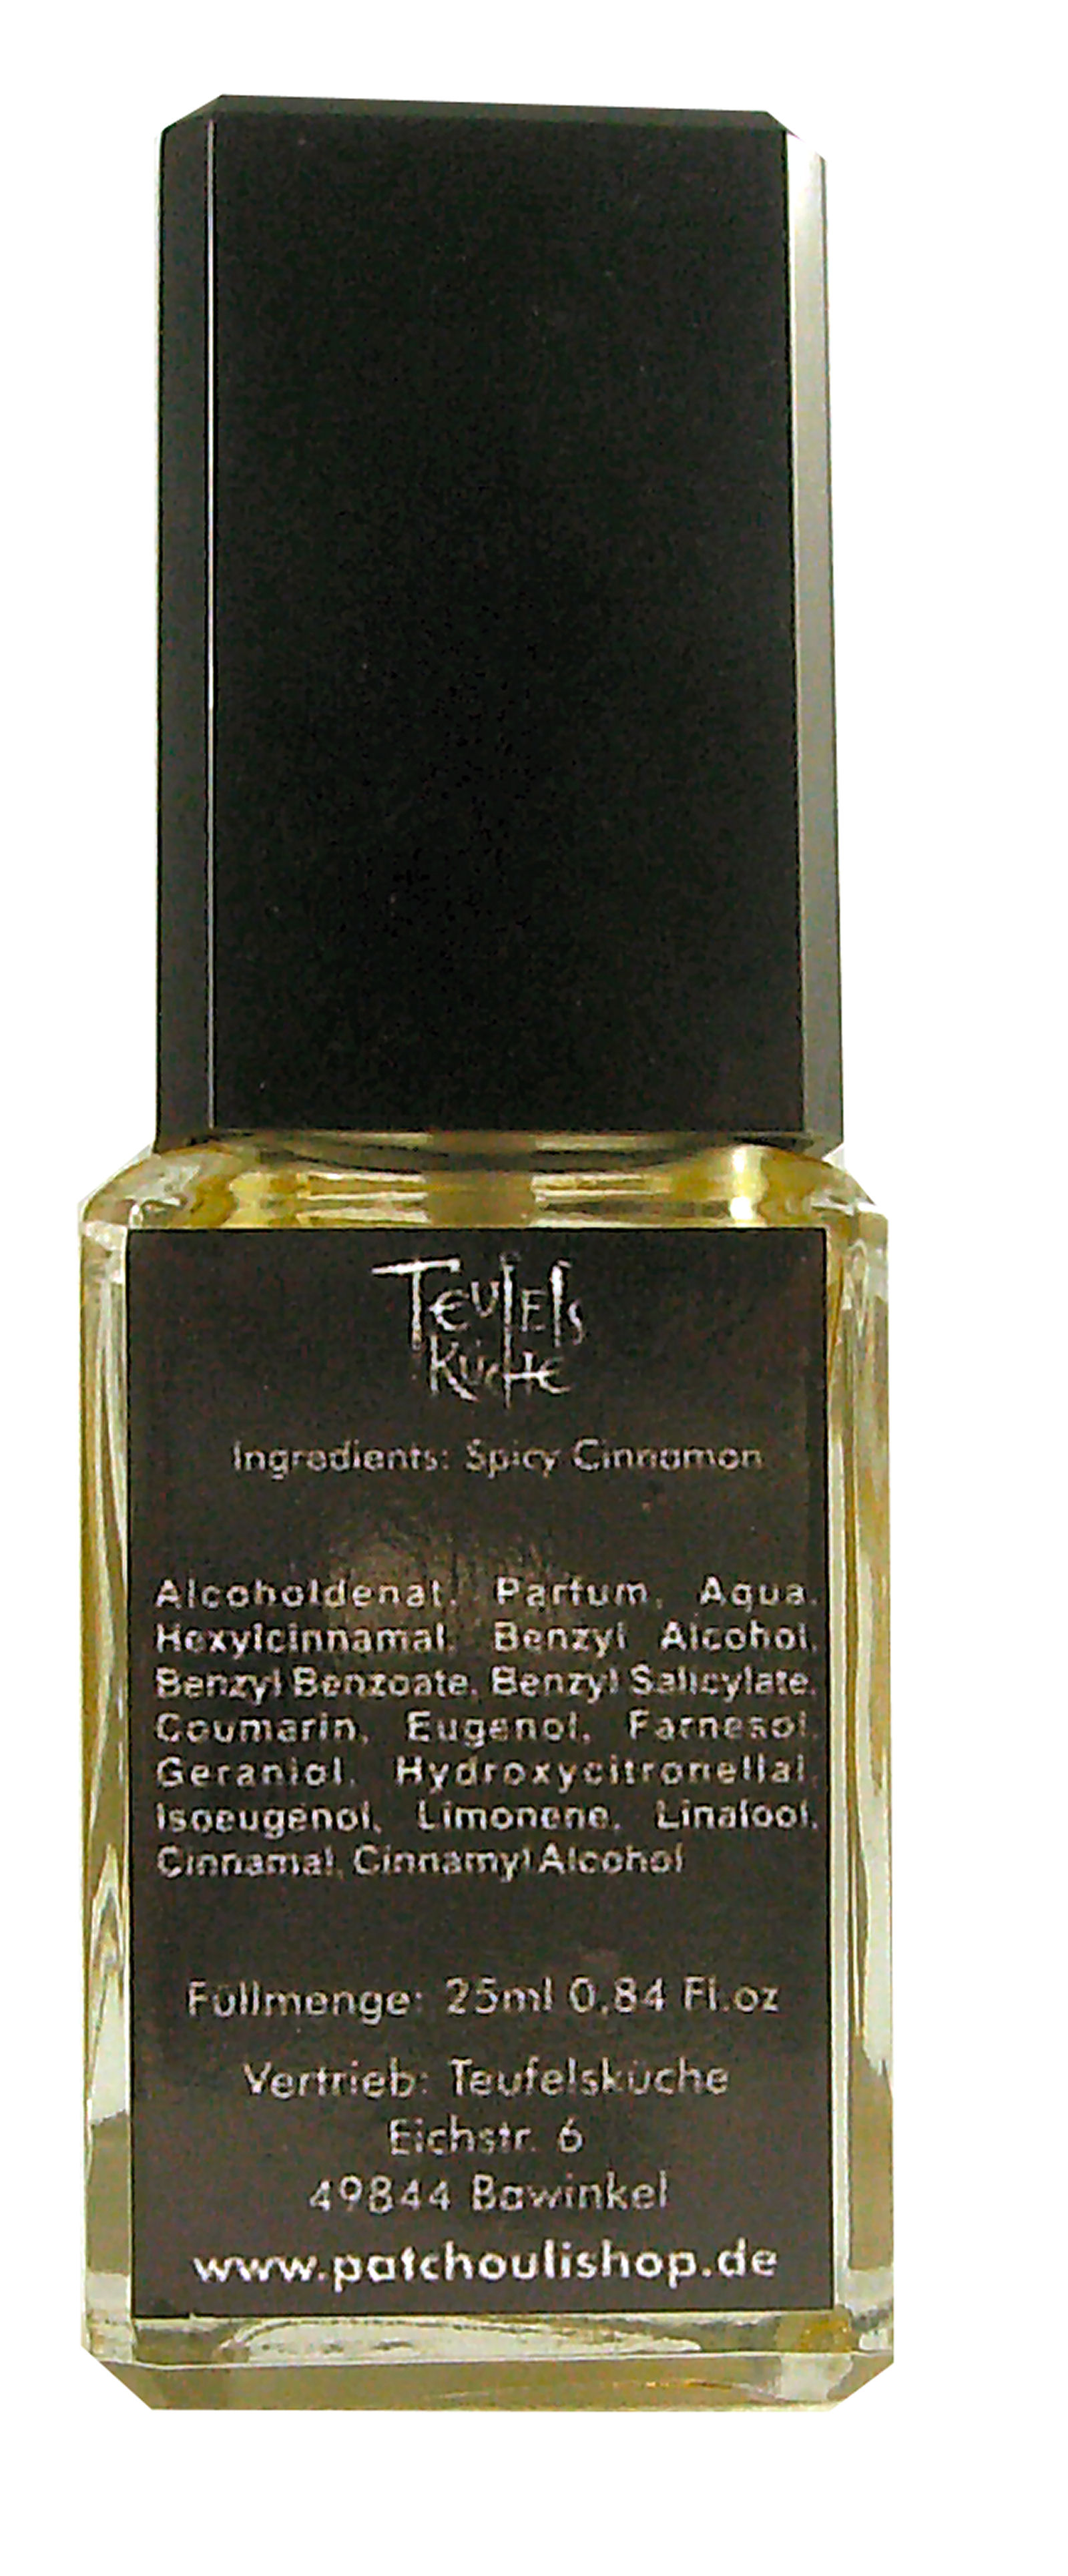 Patchouli Spicy Cinnamon 25ml